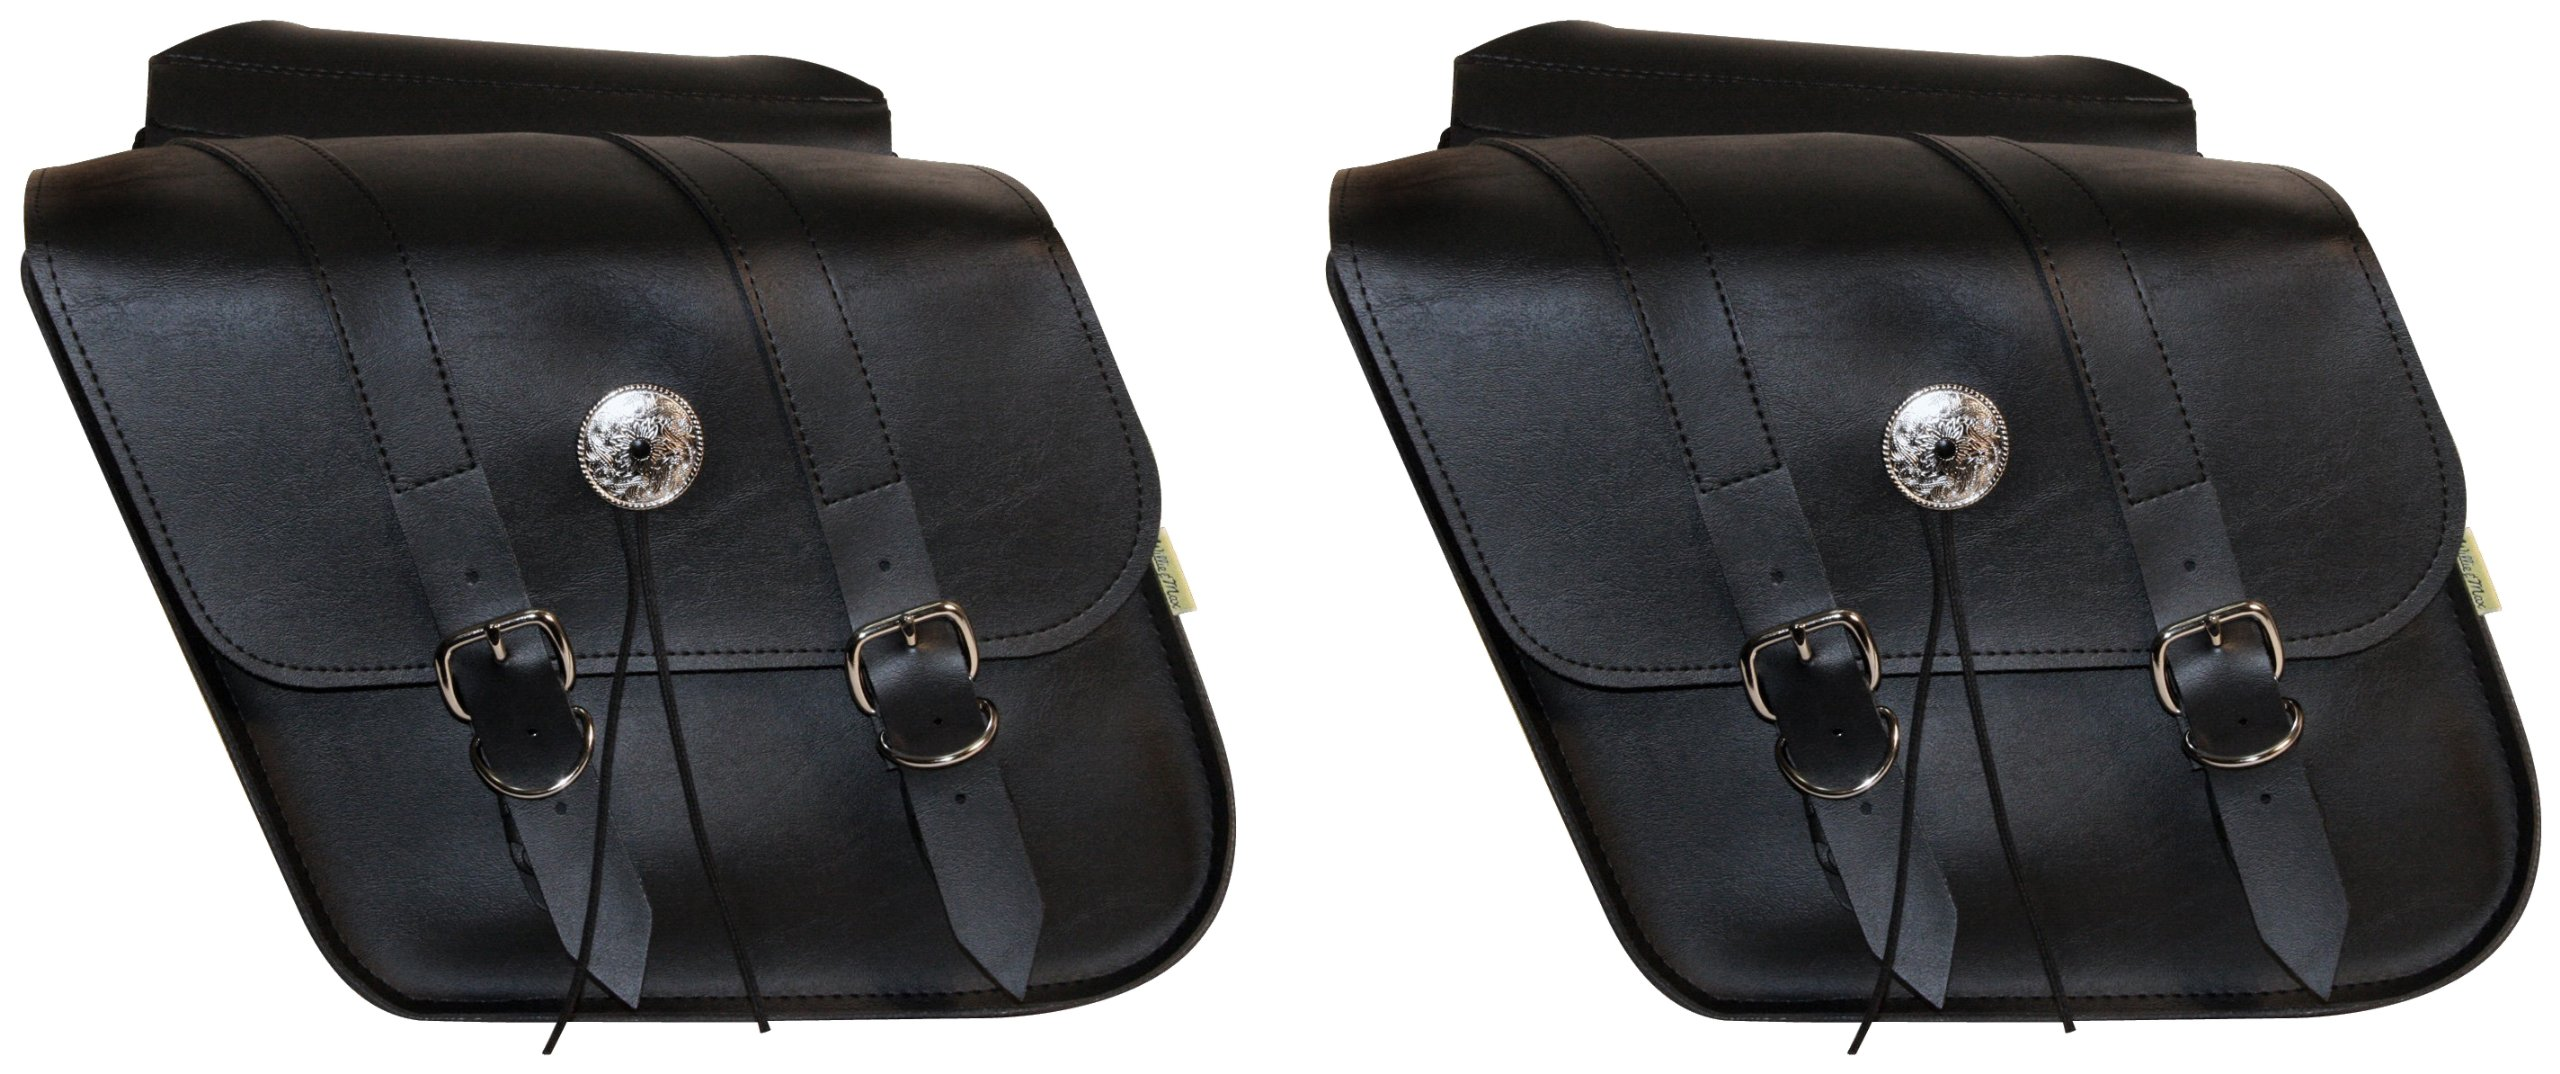 Willie & Max By Dowco - Deluxe Series - Compact Slant Motorcycle Saddlebag Set - Lifetime Limited Warranty - UV Protection - Maintenance Free Synthetic Leather - Black -Up to 10L Each/20L Total Capacity [ 58707-00 ]